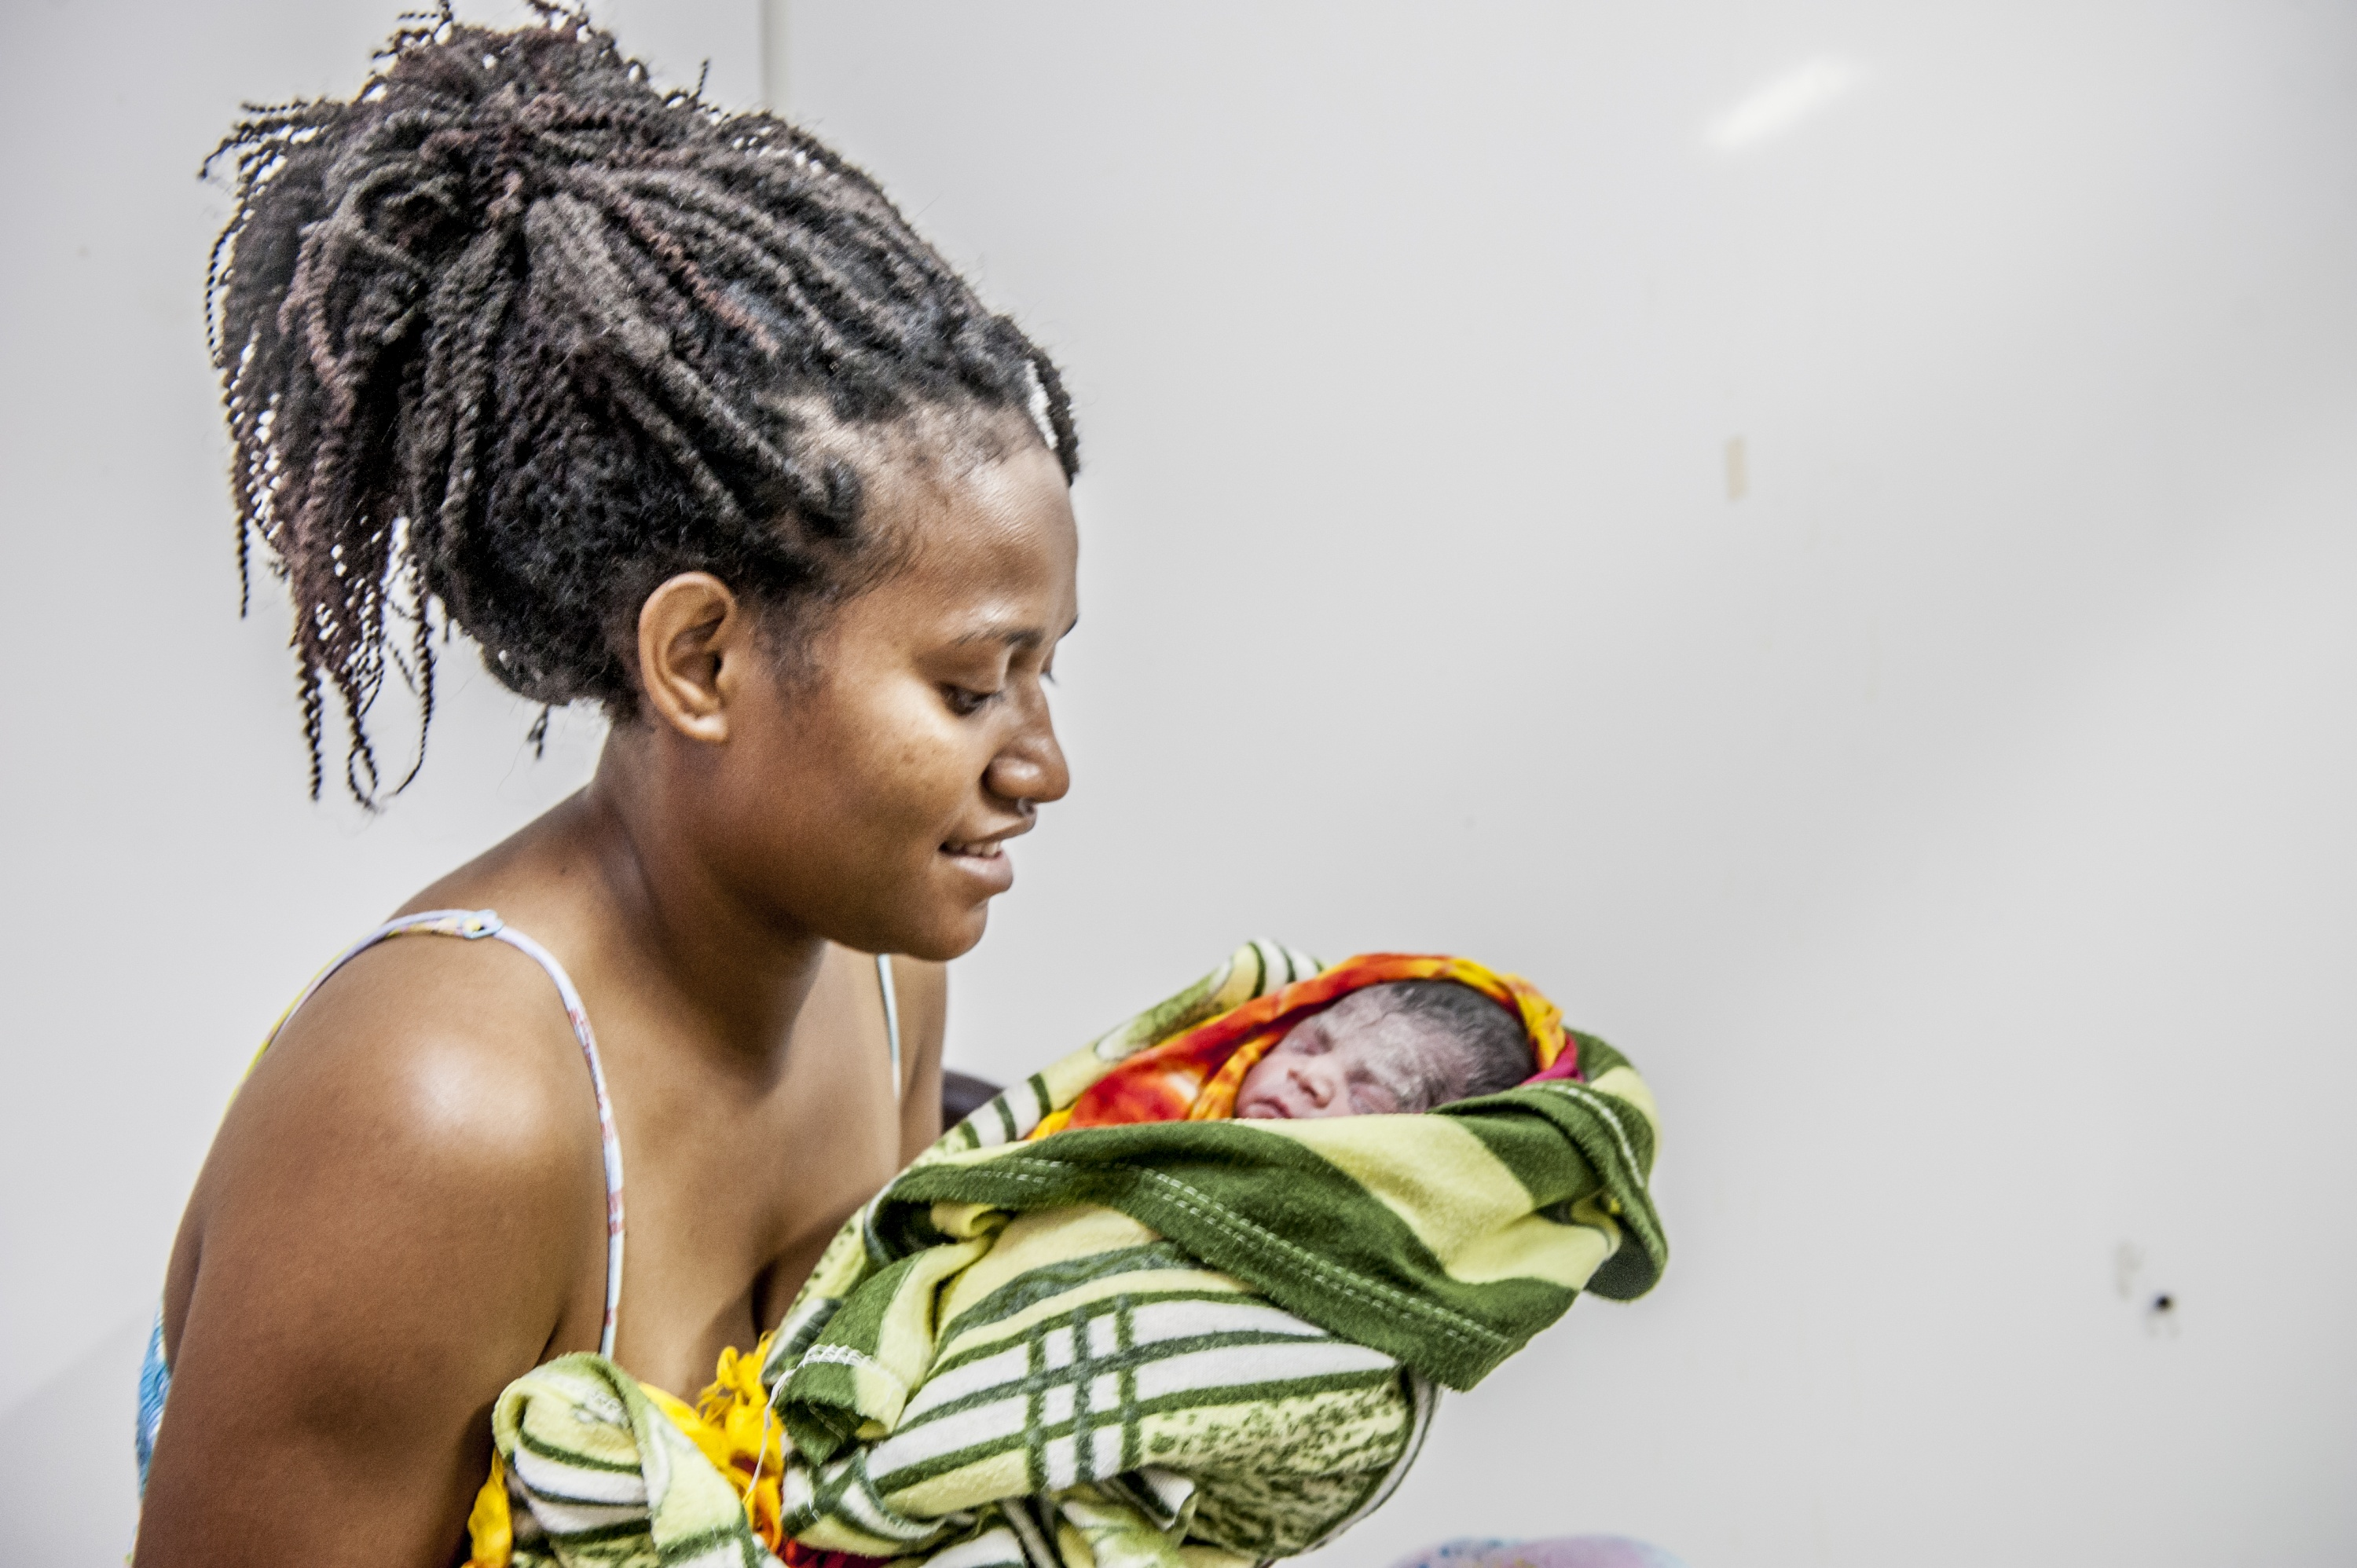 'LEAVE NO ONE BEHIND': The case for global maternal health action Part 2